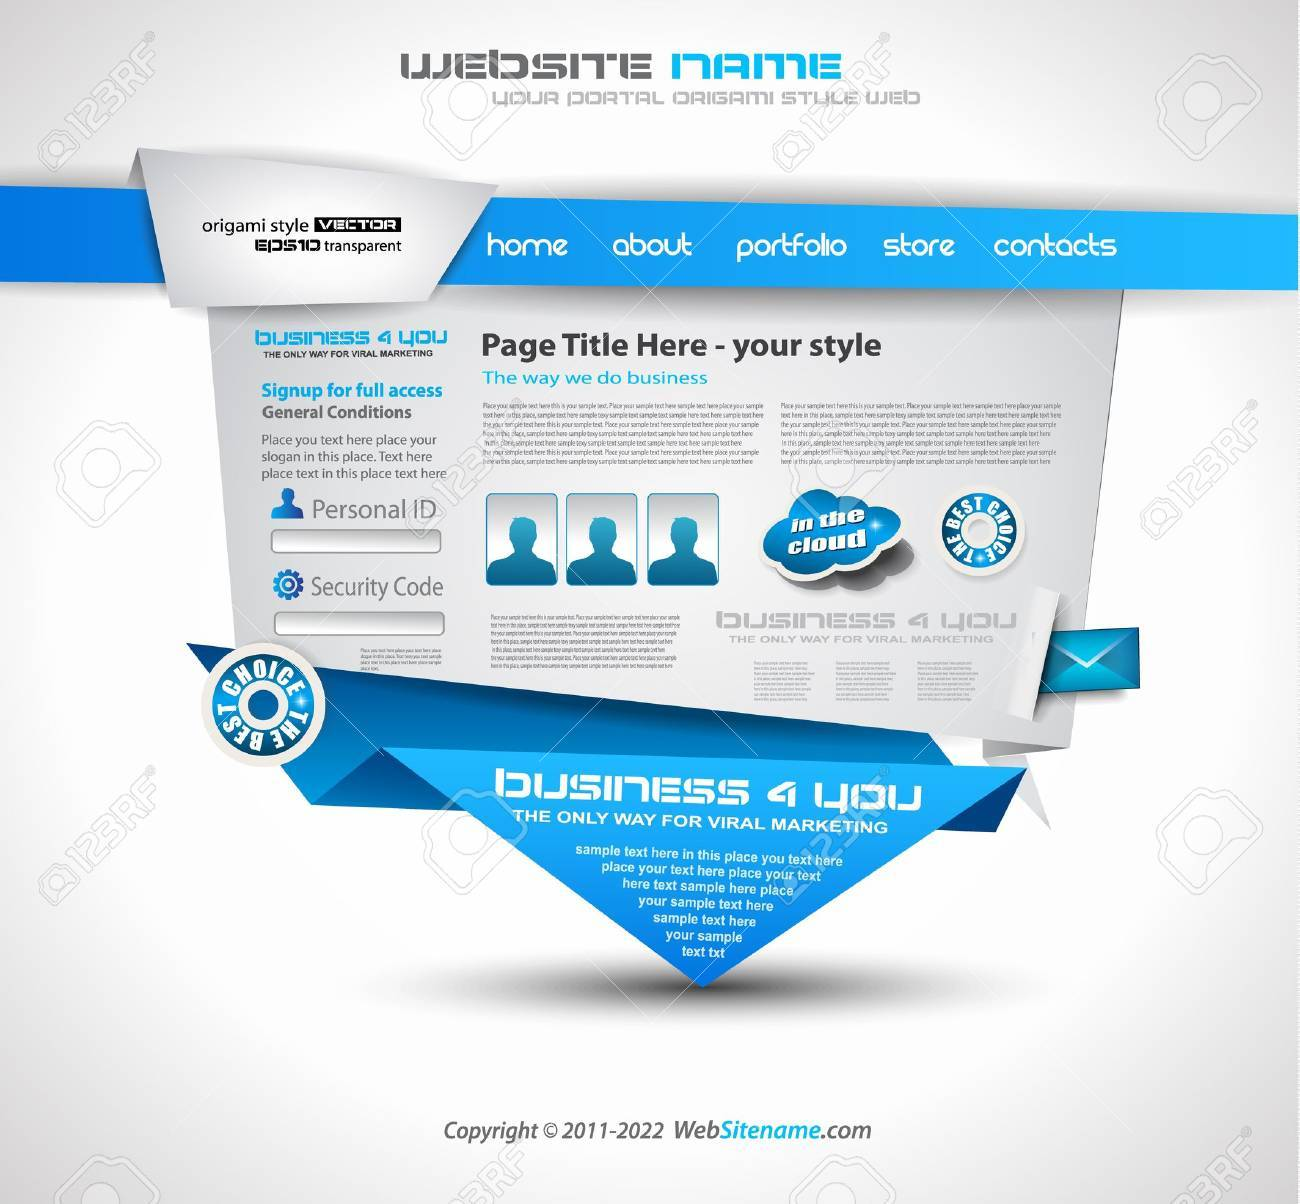 Origami Website - Elegant Design for Business Presentations. Template with a 3 side choices panel. Transparent shadows. Stock Vector - 14094339